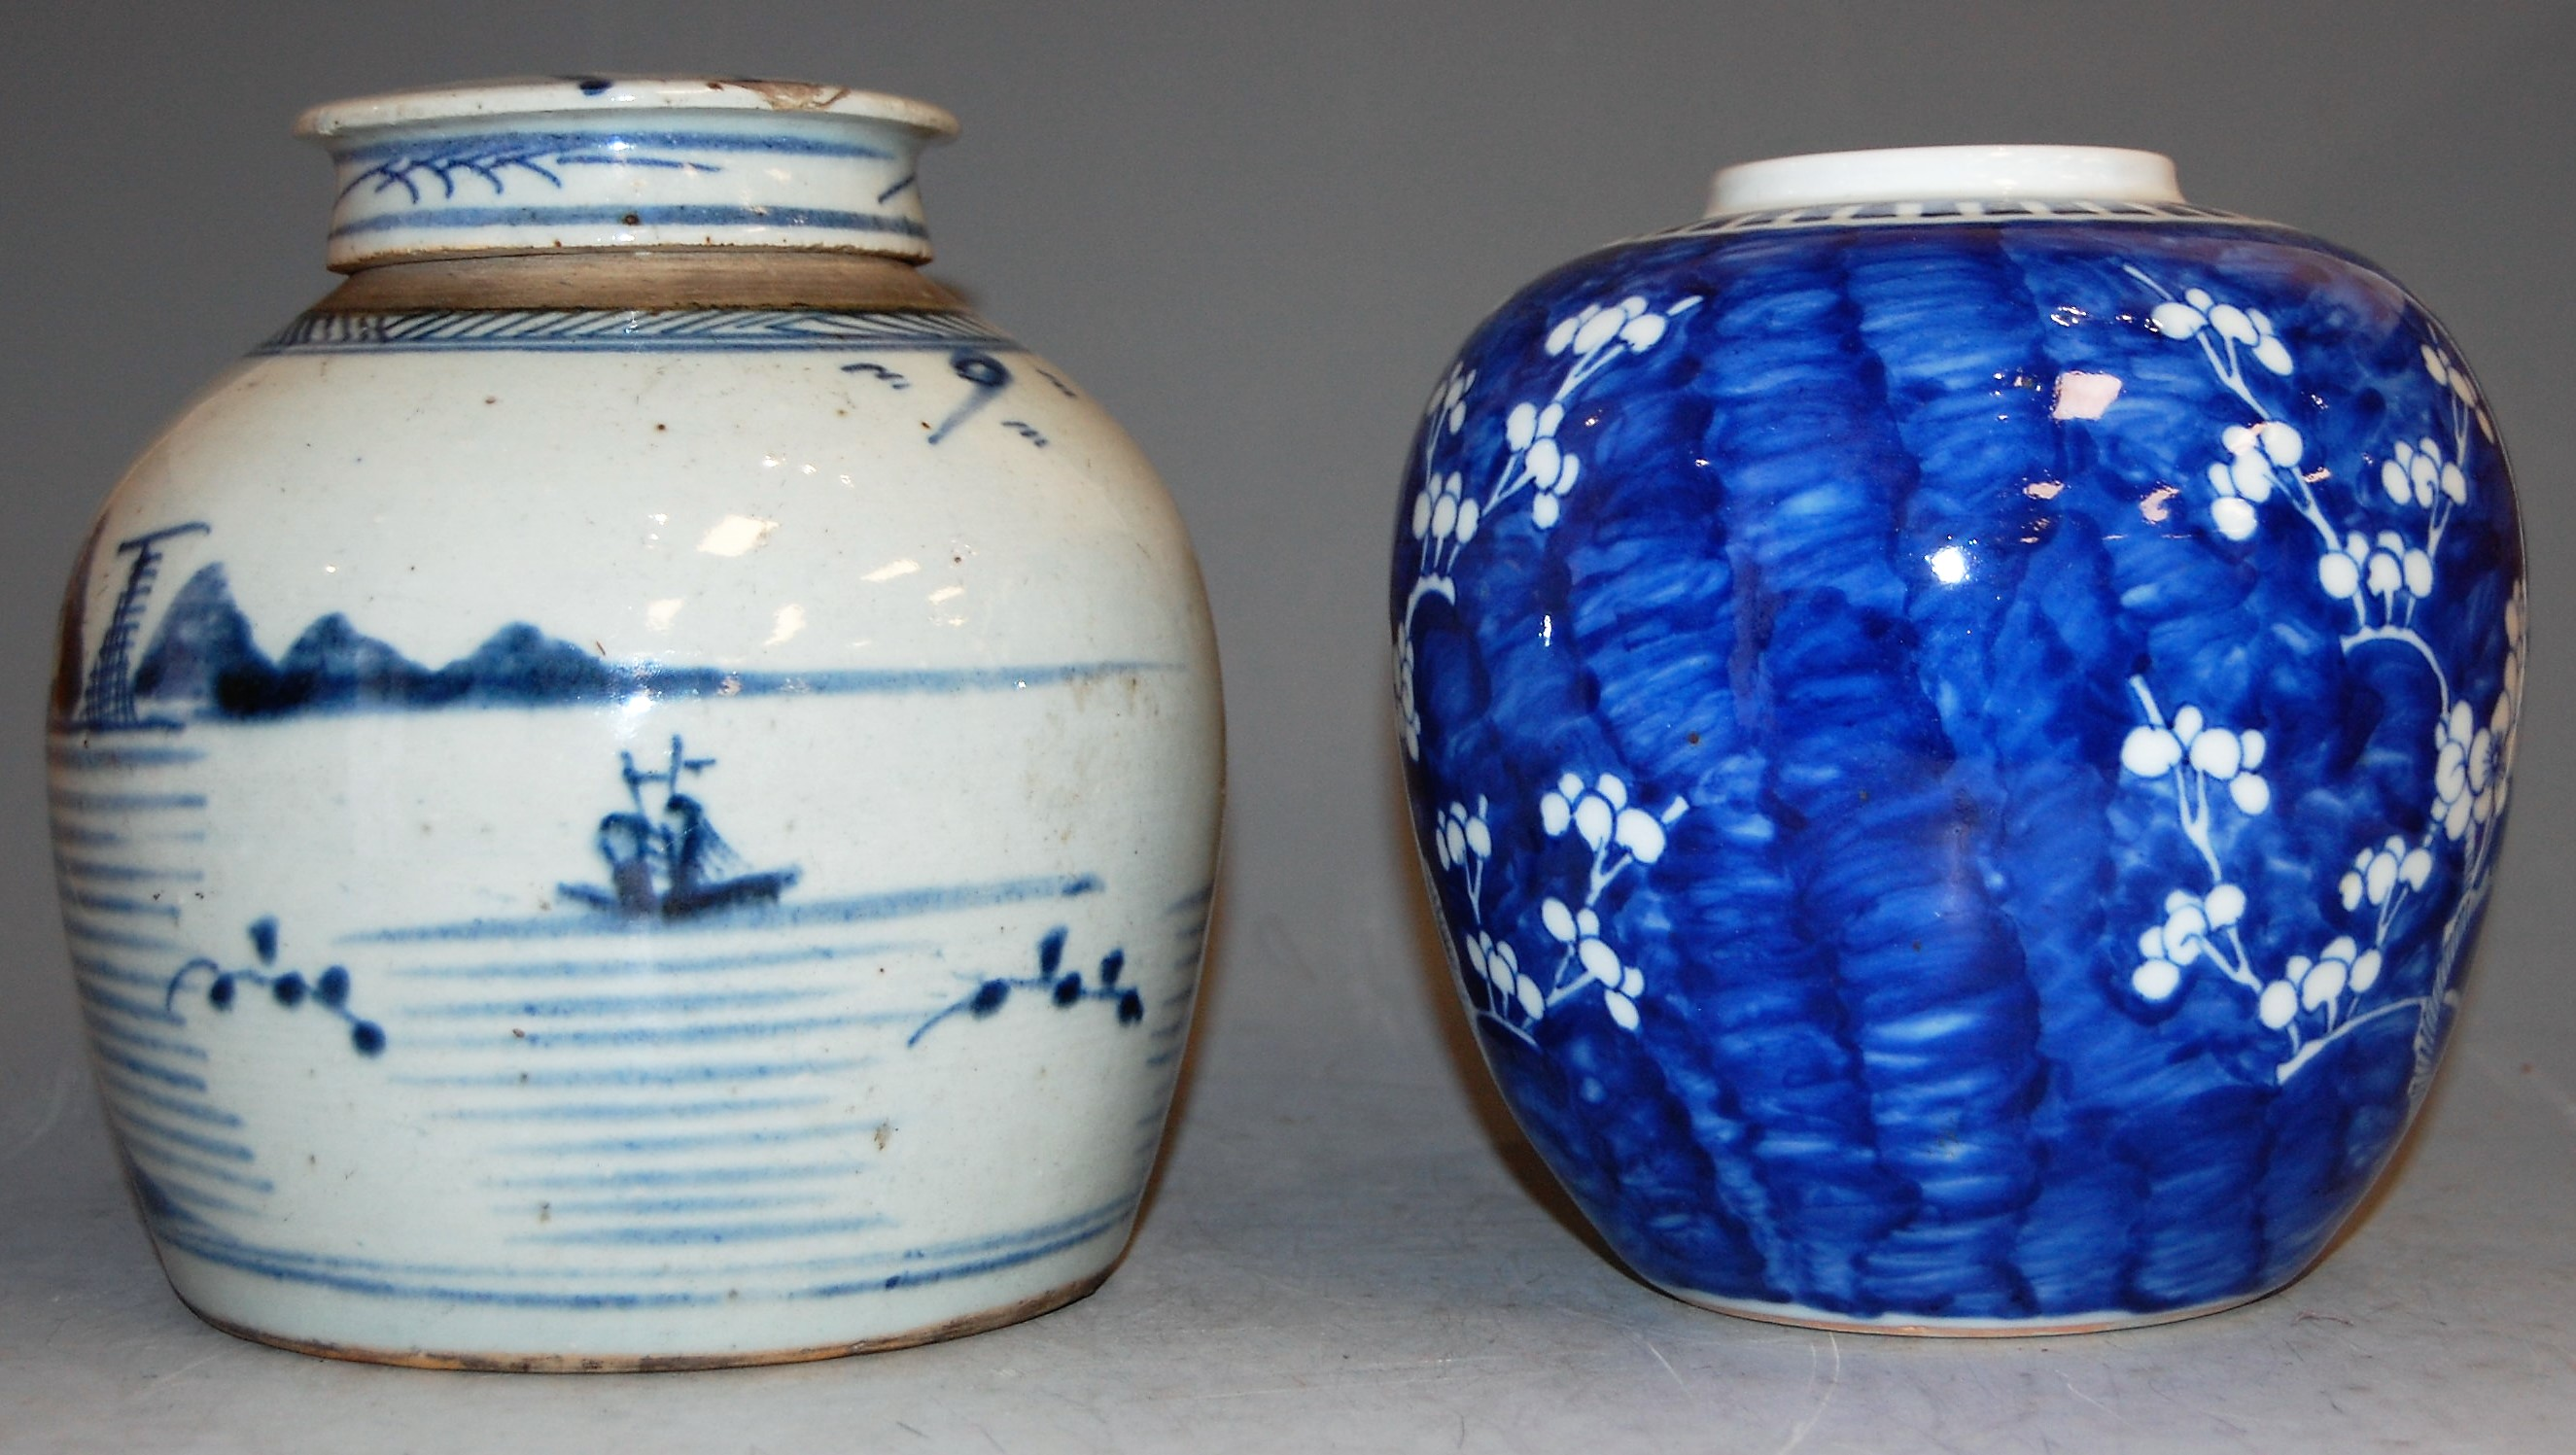 Lot 55 - A 19th century Chinese stoneware blue and white ginger jar and cover, h.18cm; together with one